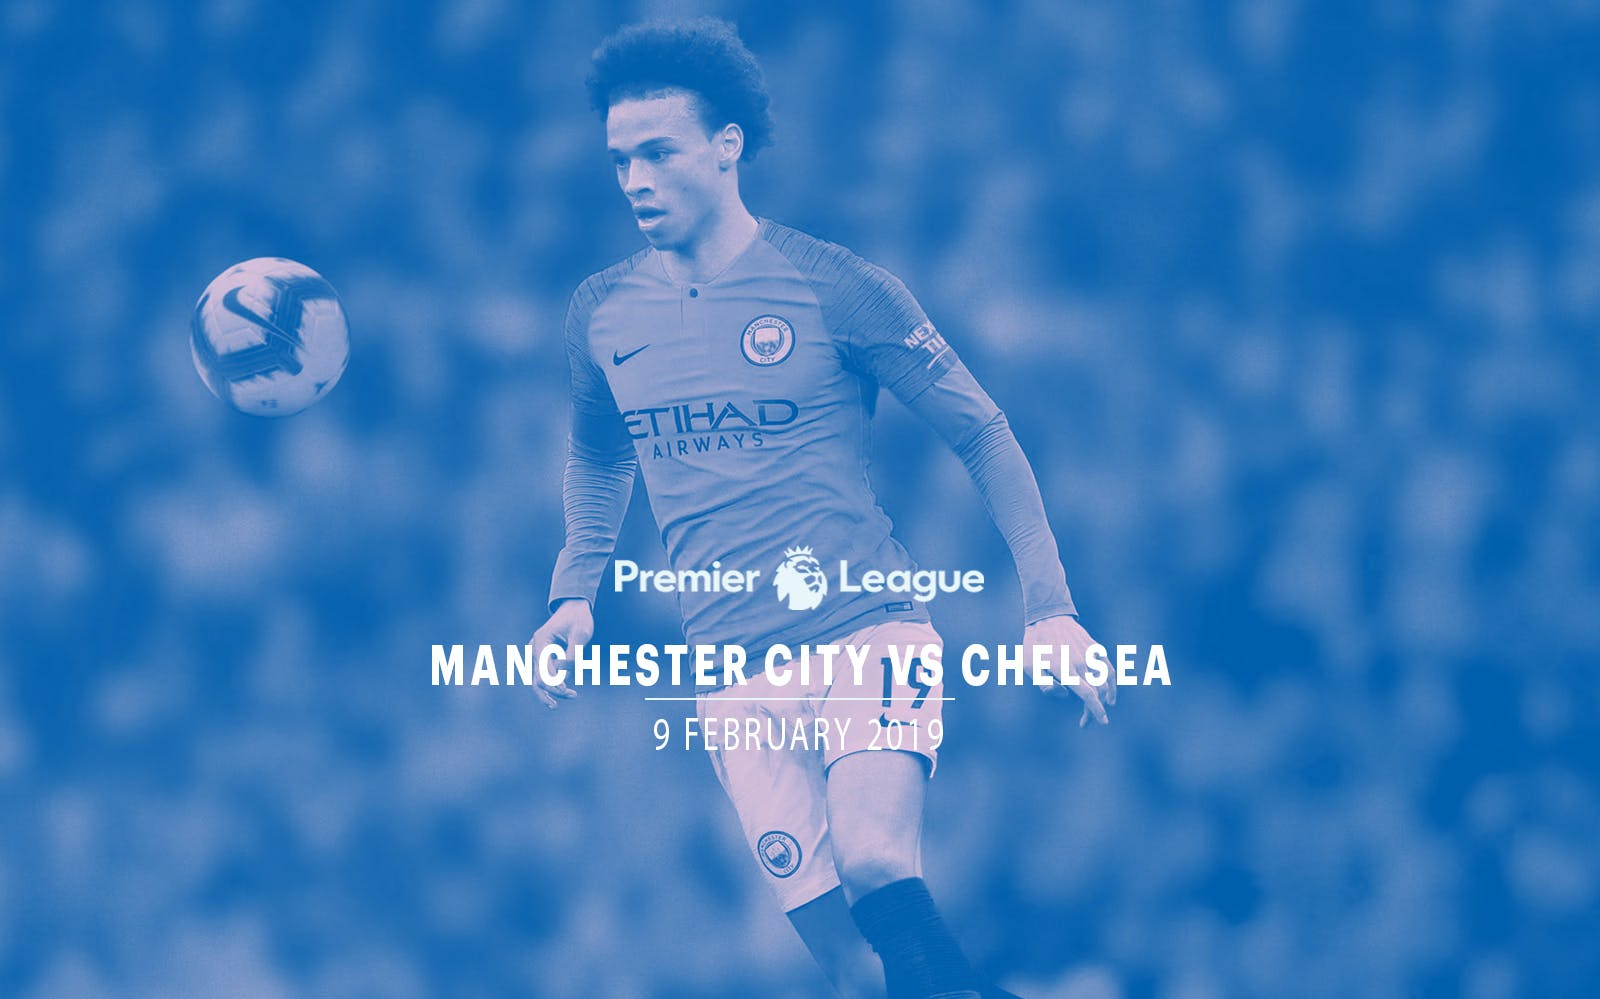 manchester city vs chelsea-9th feb 2019-1